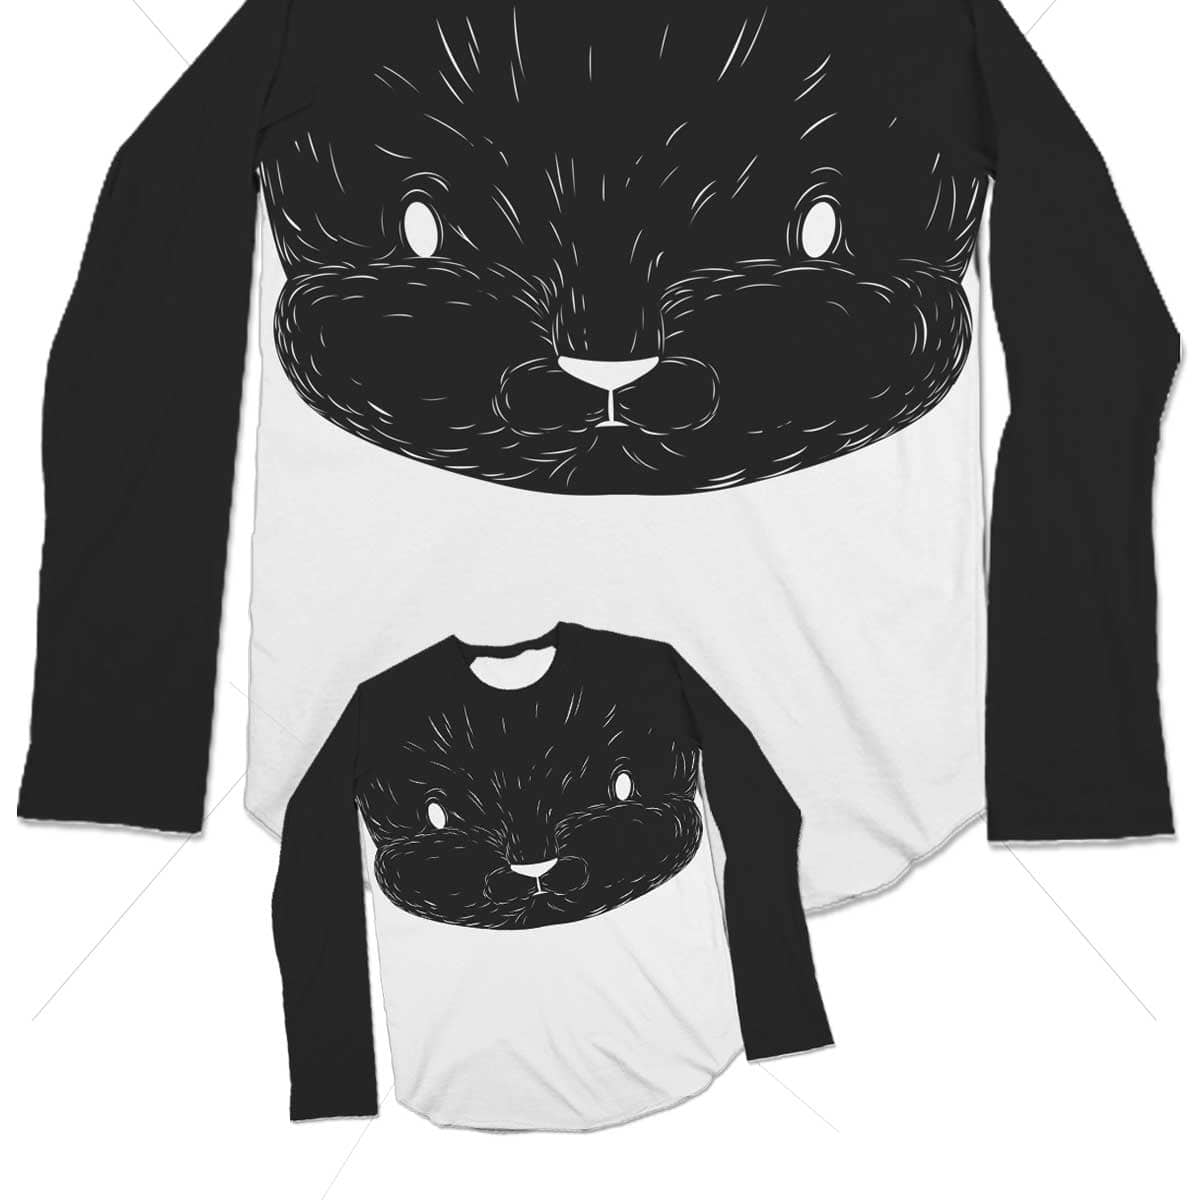 Black Rabbit by dnice25 on Threadless